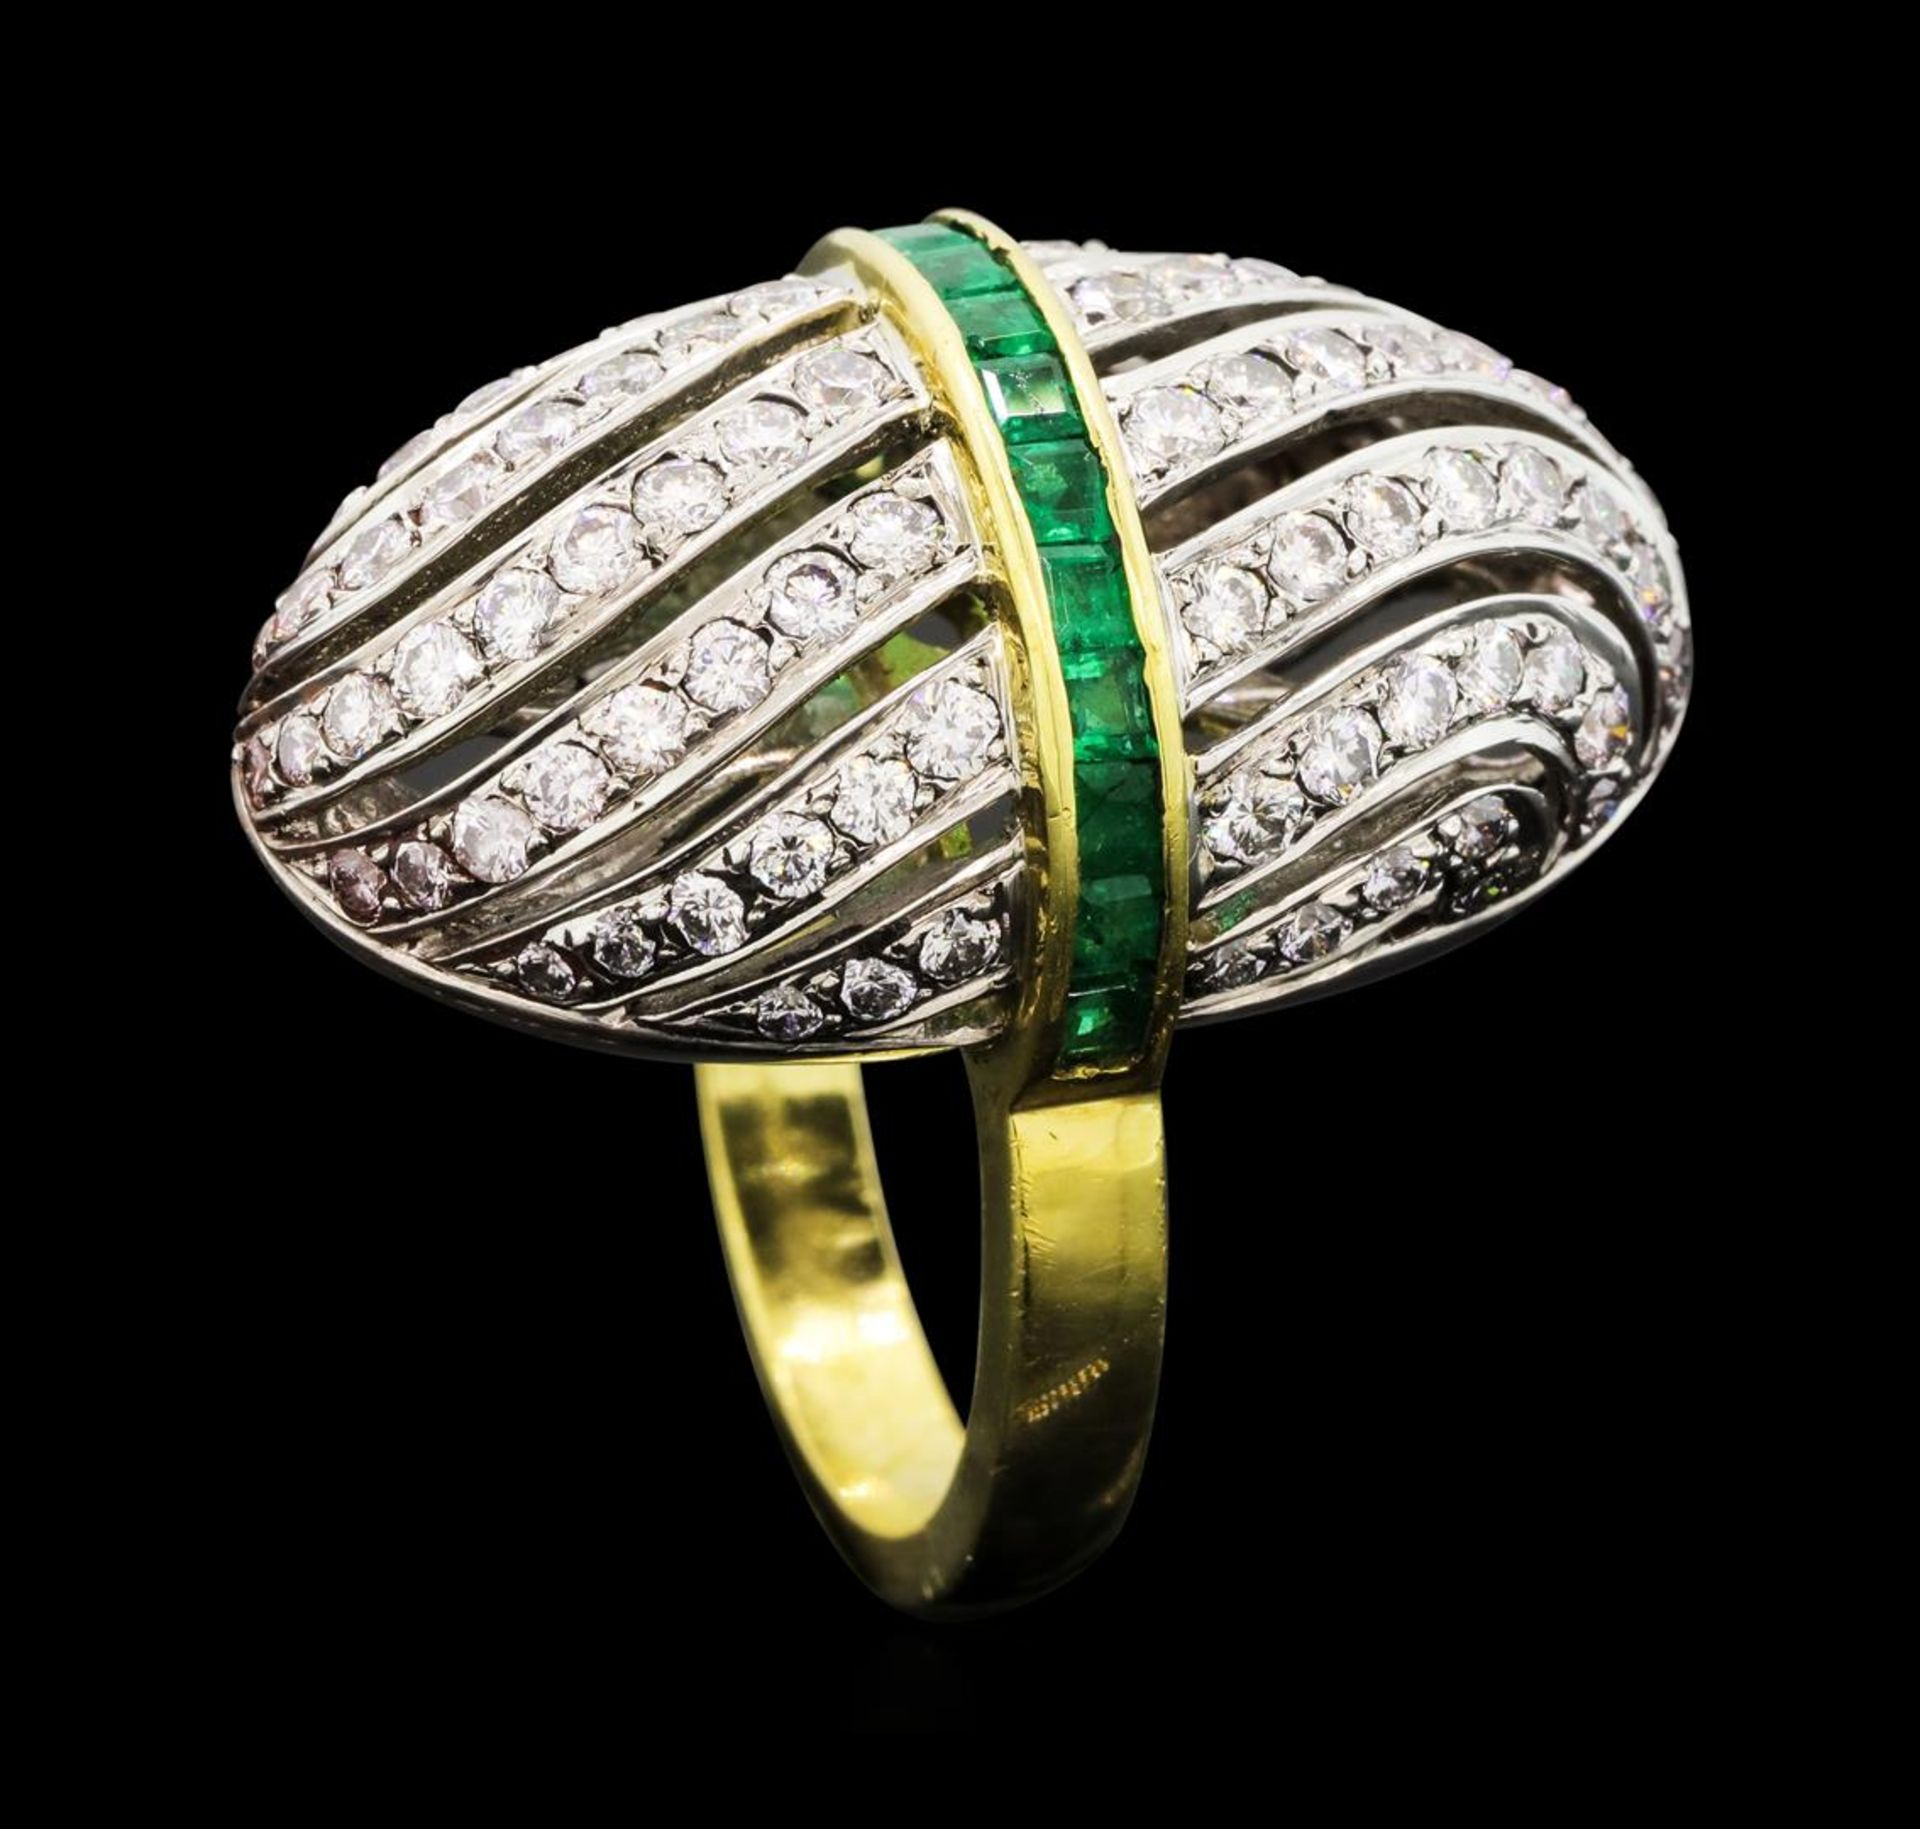 1.81 ctw Diamond and Emerald Ring - 18KT Yellow and White Gold - Image 4 of 5